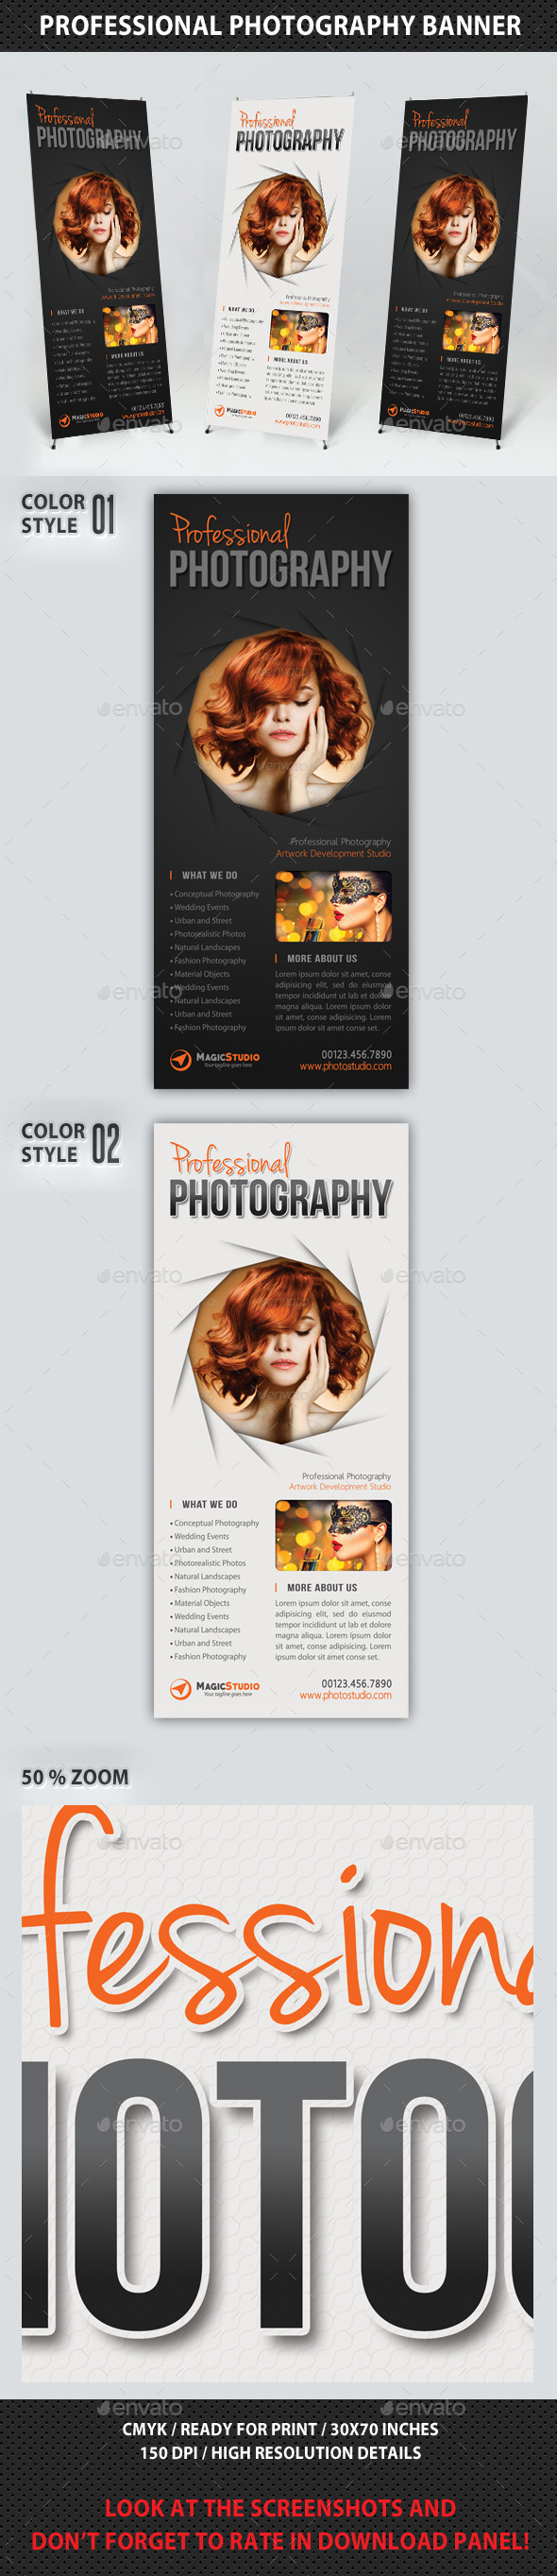 GraphicRiver Photography Studio Multipurpose Banner 14 10542371